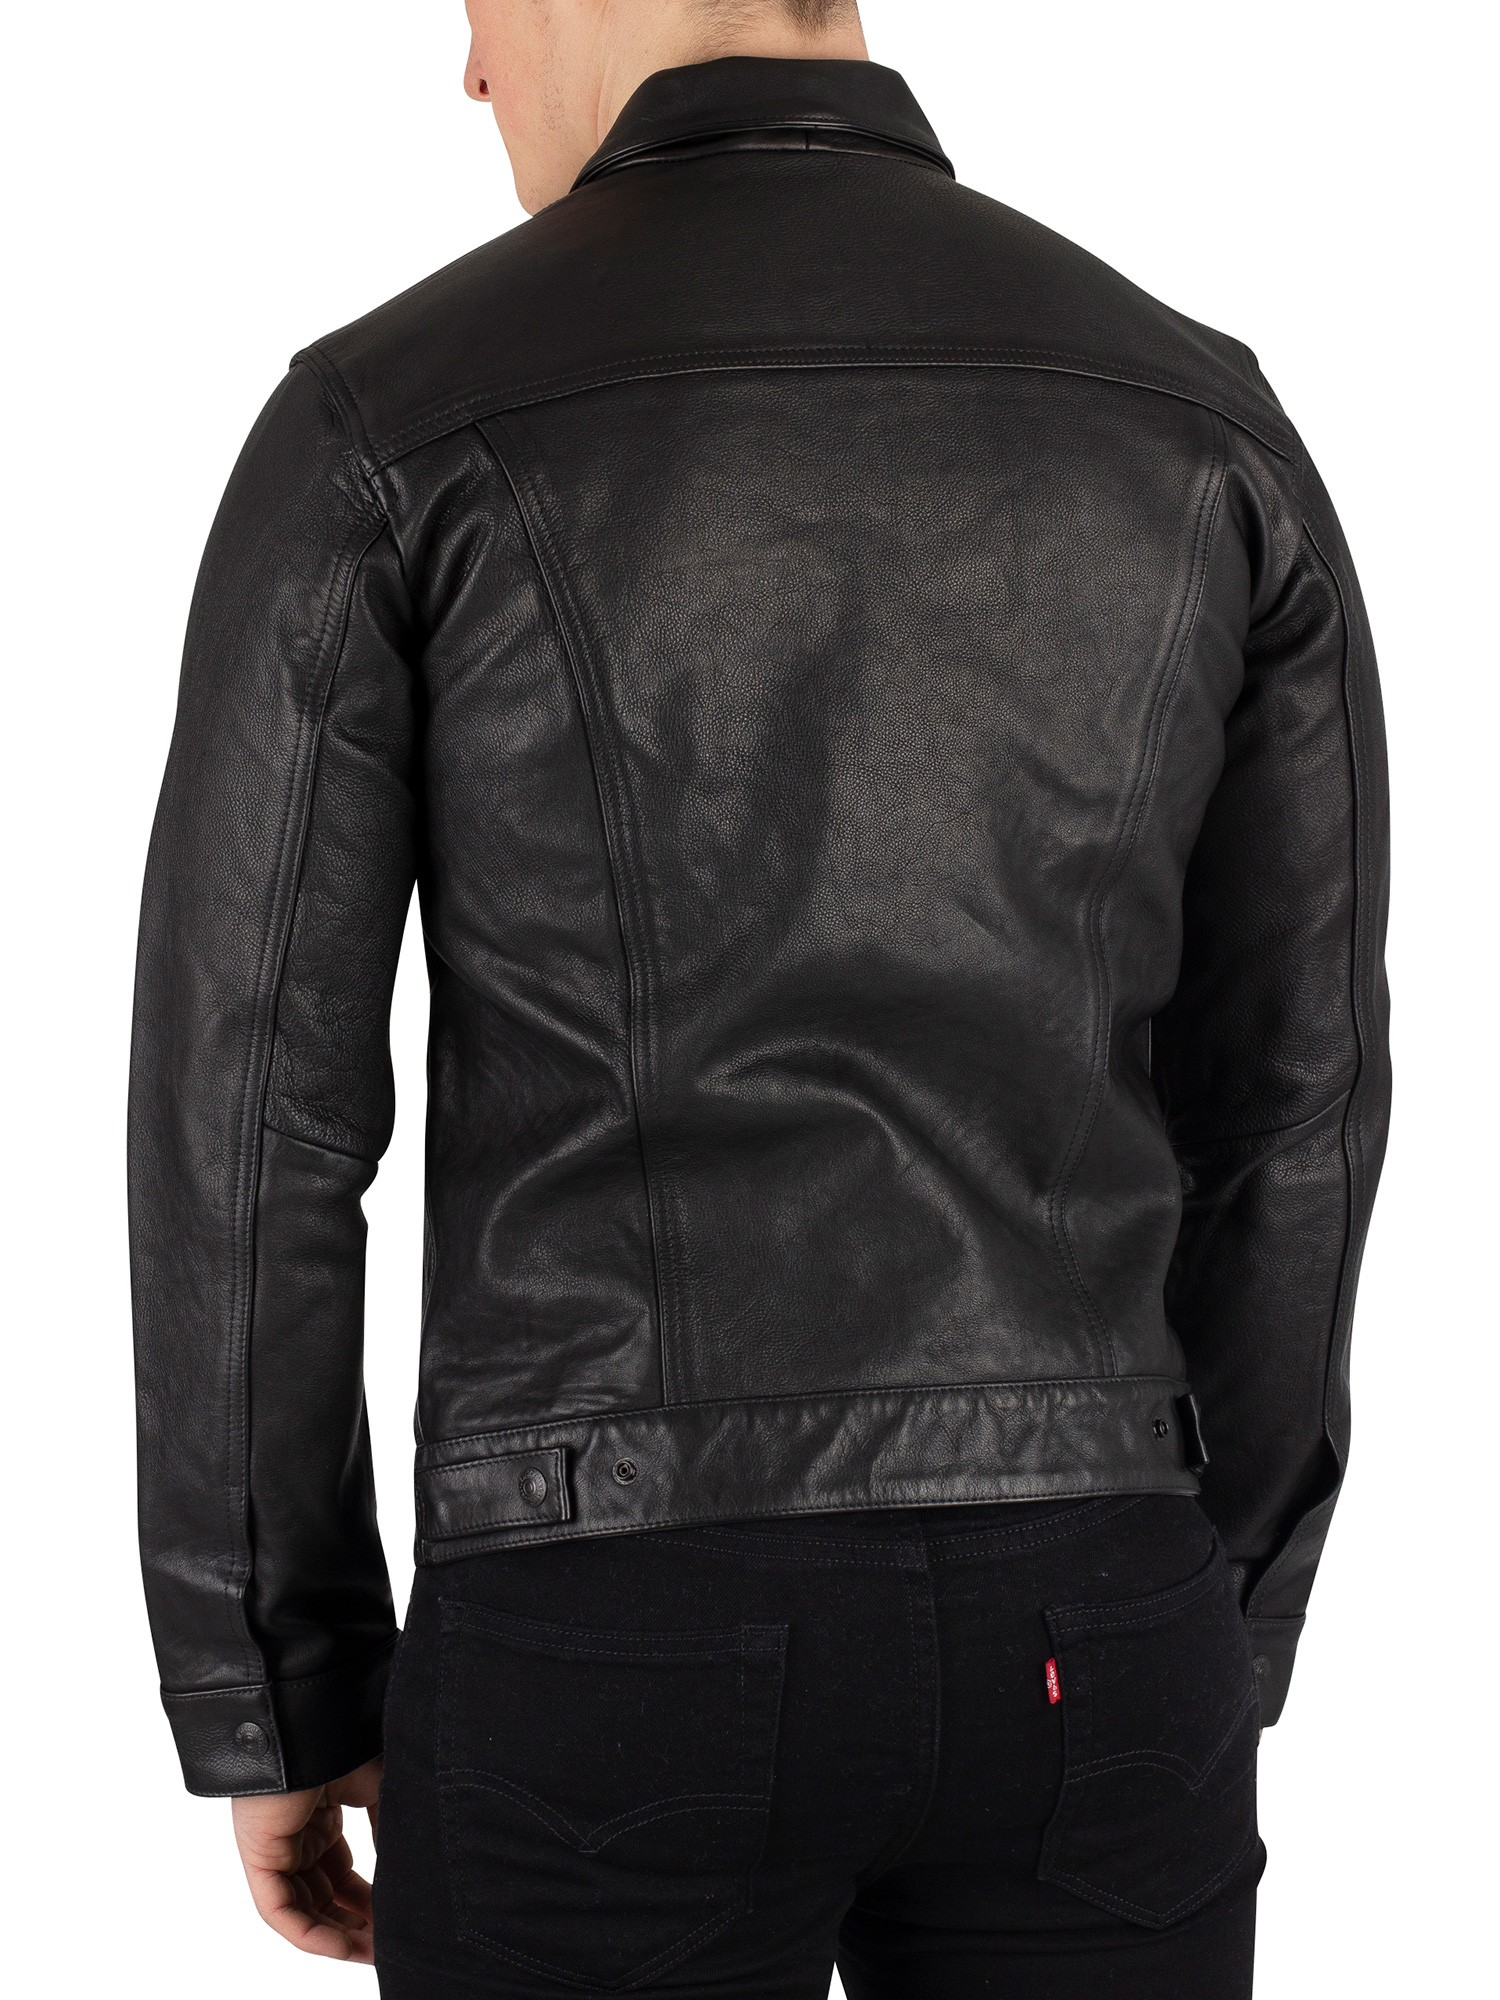 Levi's Leather Trucker Jacket - Type 3 Black